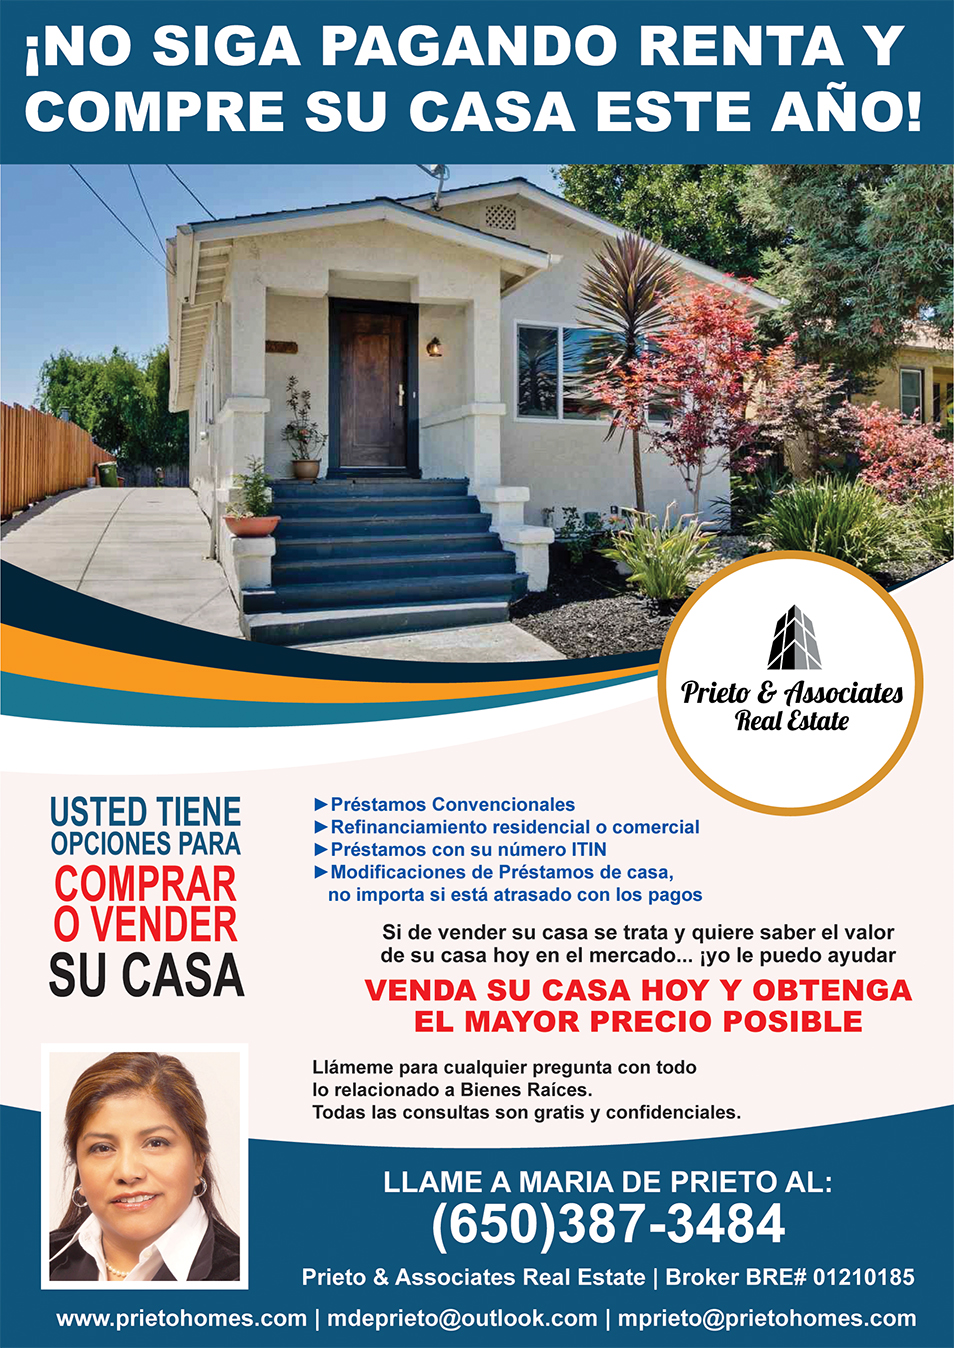 Prieto & Associates Real Estate 1 FEBRERO2019 AI-01.jpg